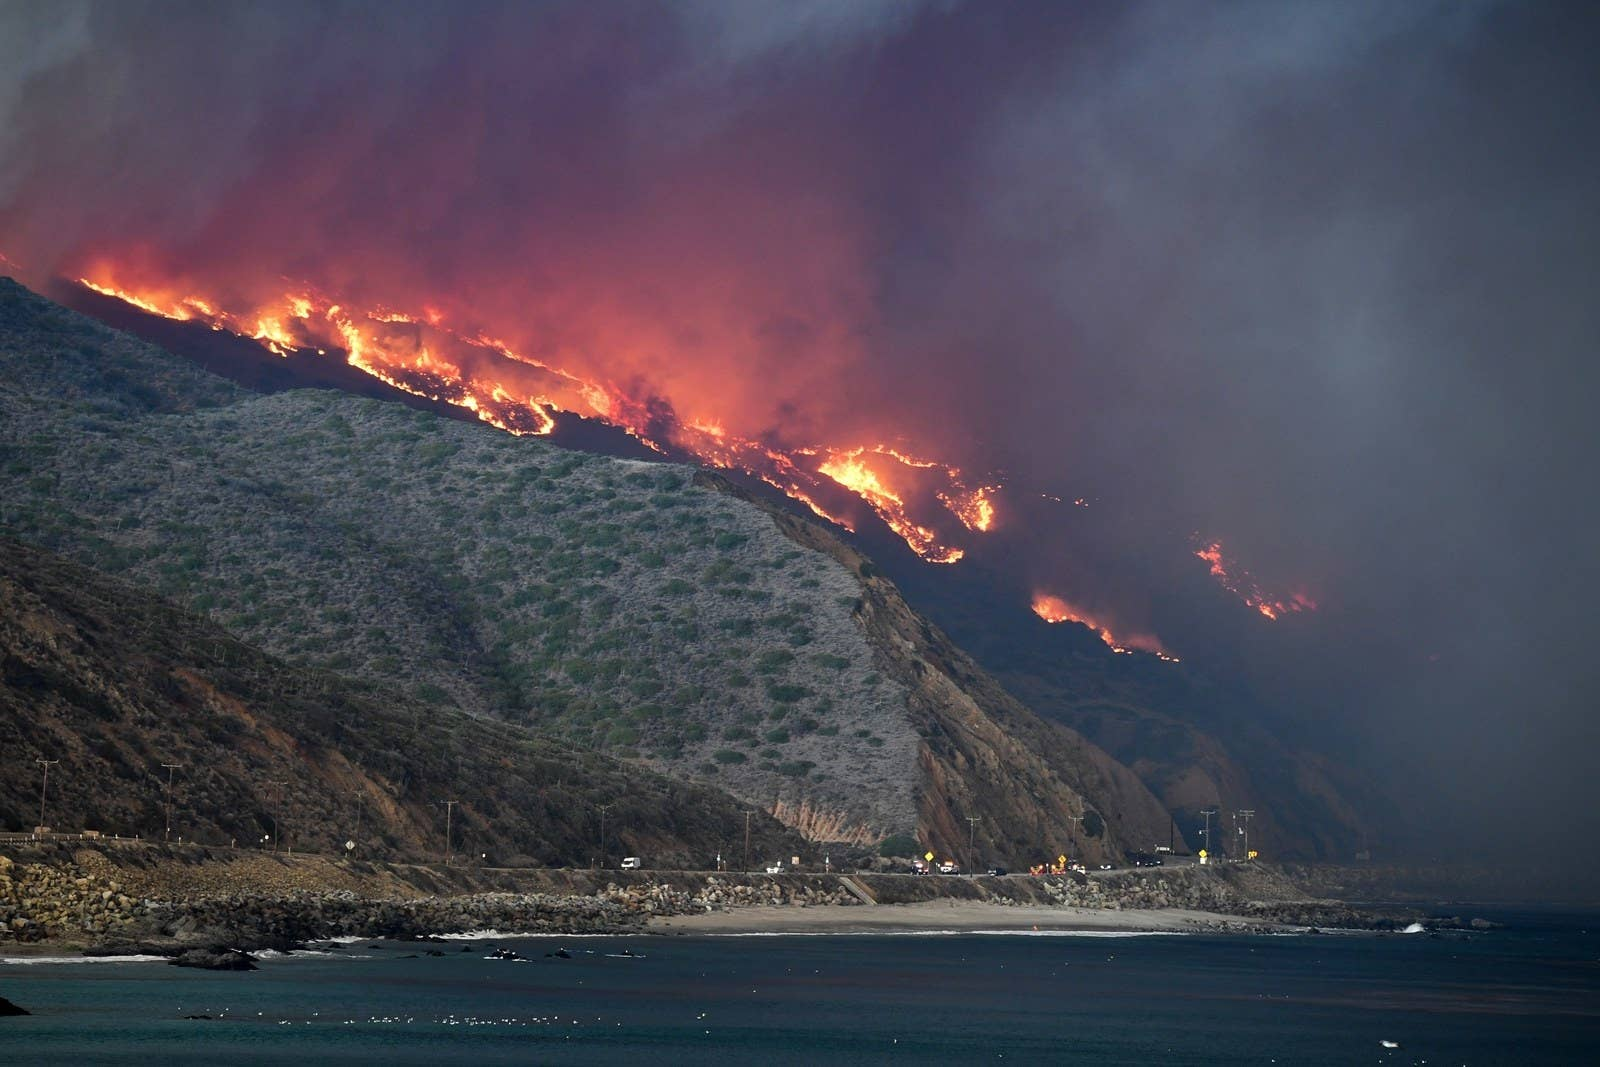 The Woolsey fire reaches the ocean along the Pacific Coast Highway near Malibu, Nov. 9.